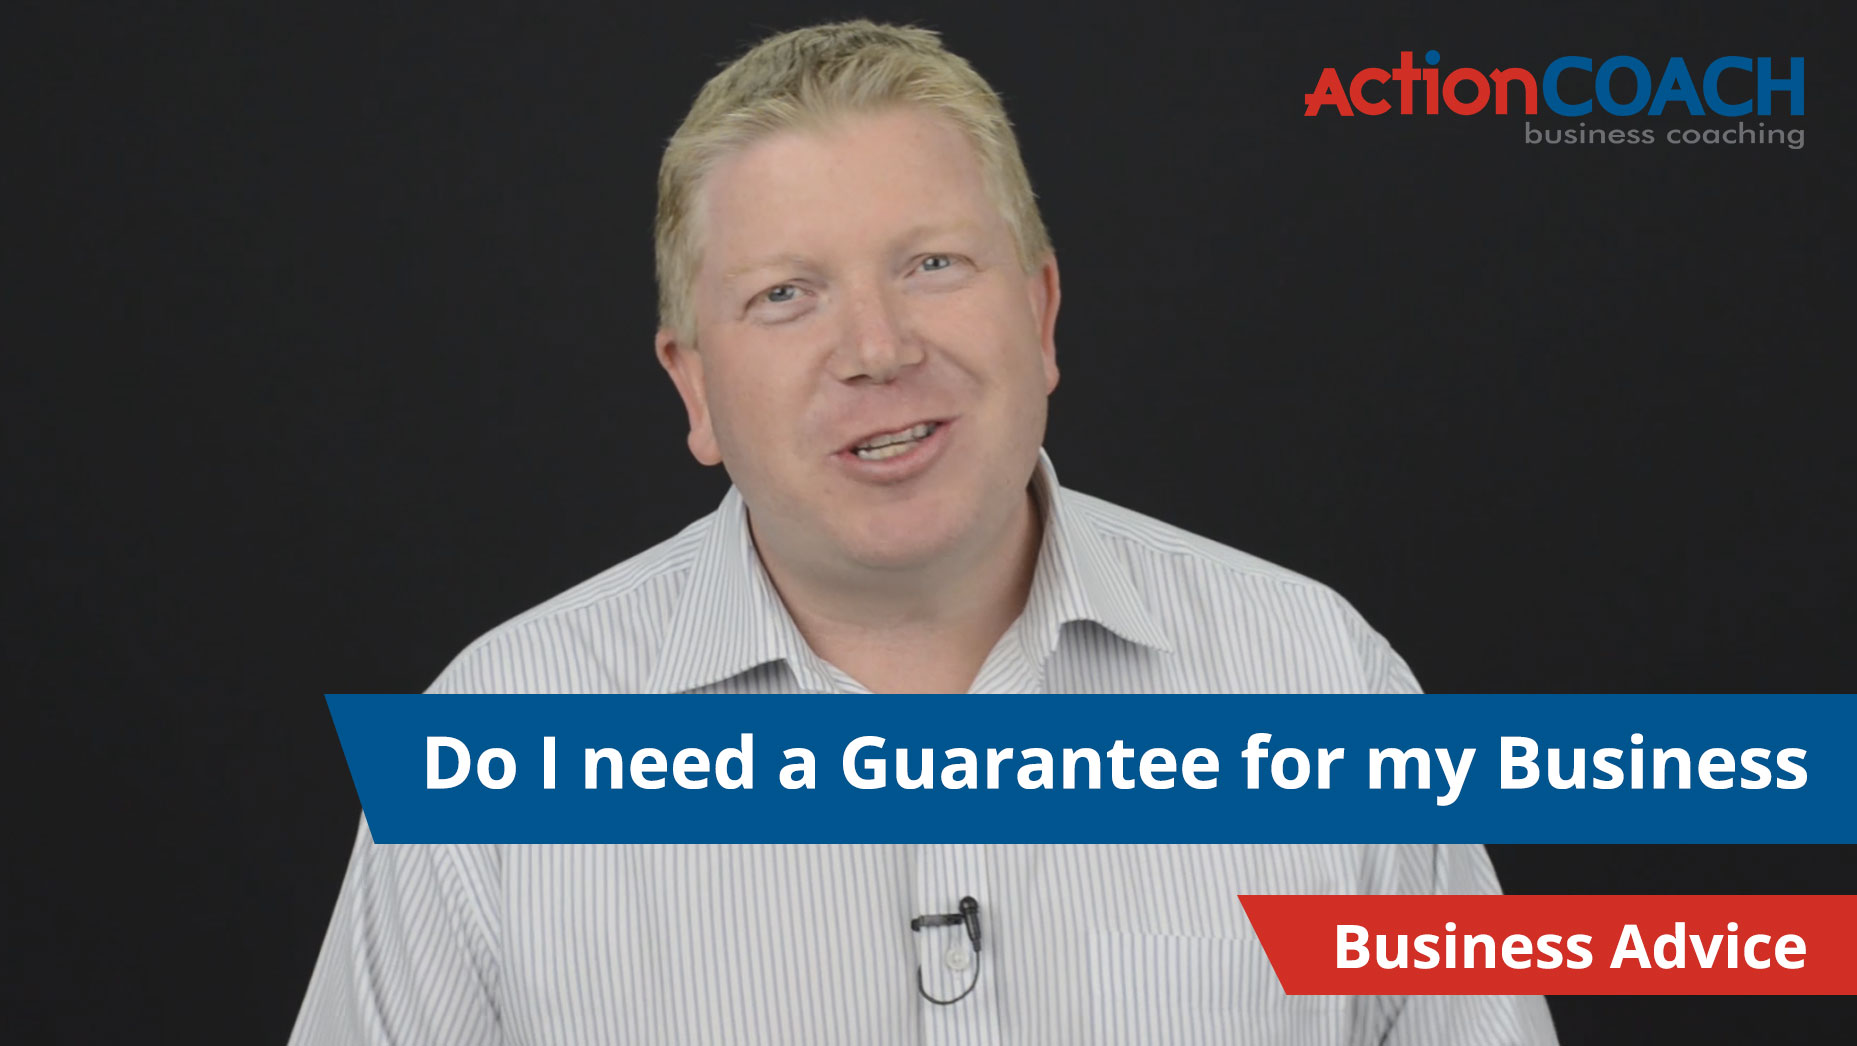 Do I really need a guarantee for my business?